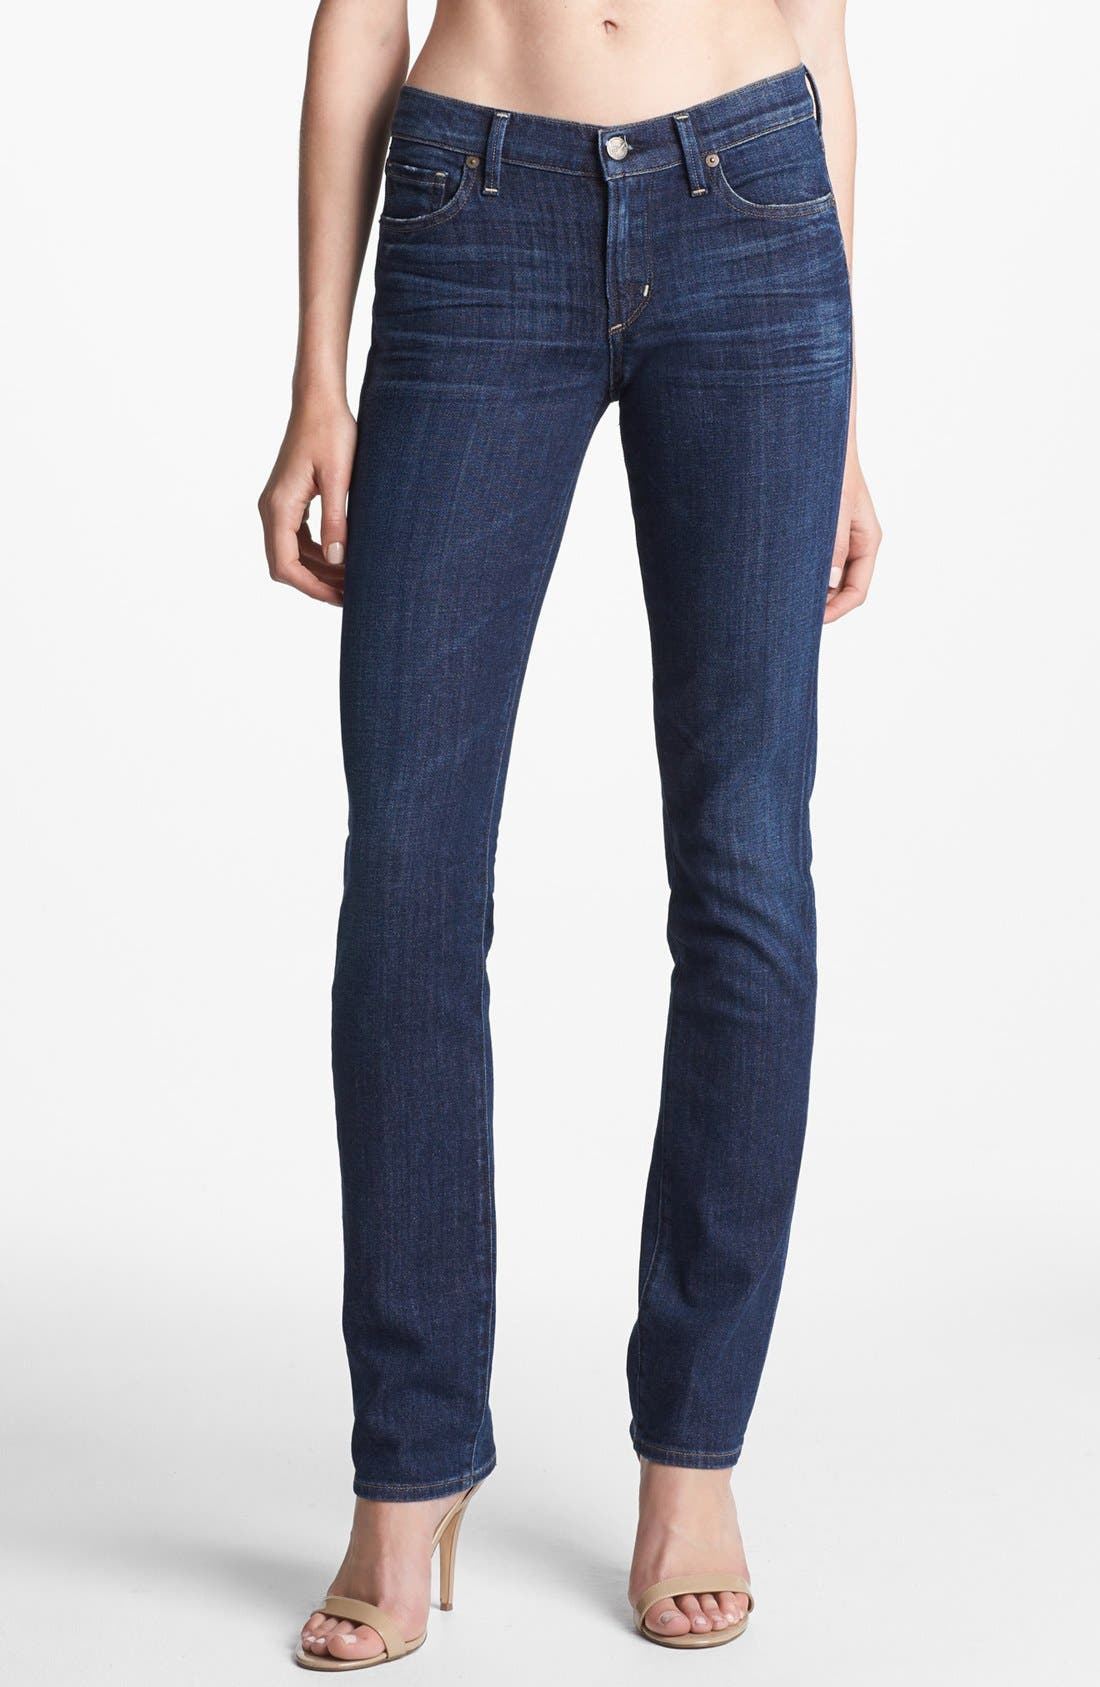 Alternate Image 1 Selected - Citizens of Humanity 'Ava' Straight Leg Jeans (Meteor)